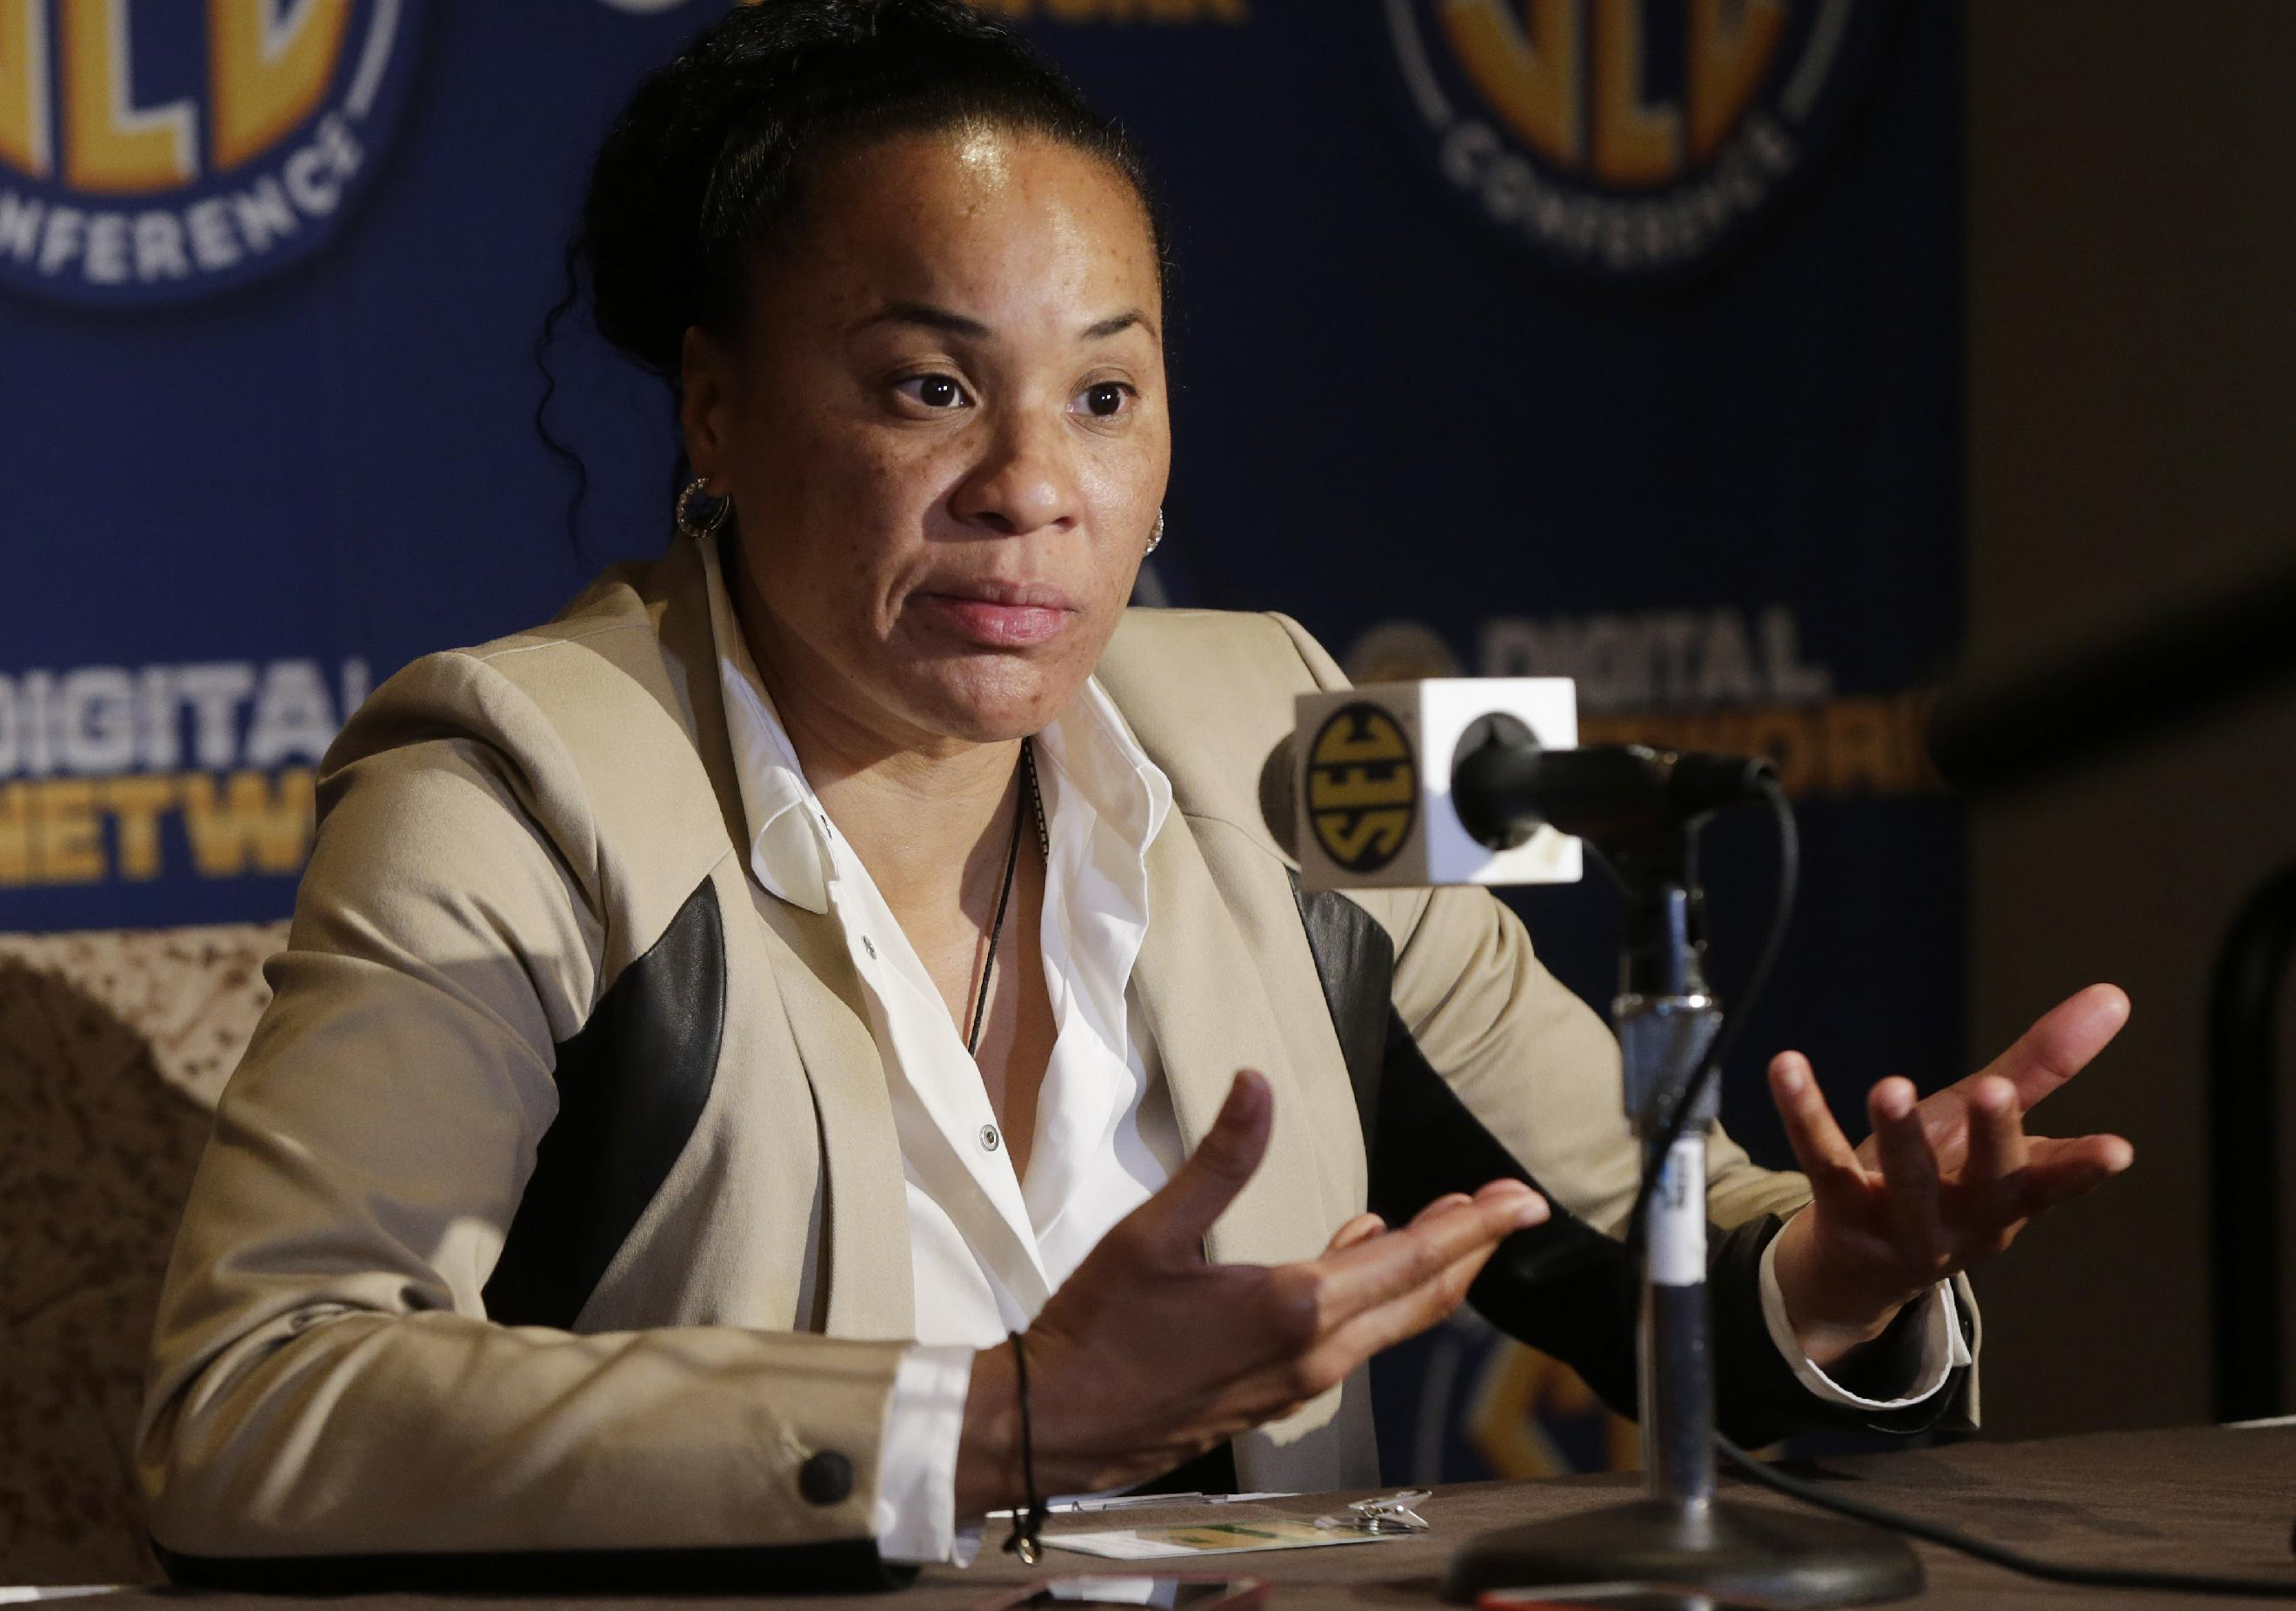 South Carolina coach Dawn Staley talks with reporters during Southeastern Conference NCAA college basketball media day in Birmingham, Ala., Thursday, Oct. 17, 2013